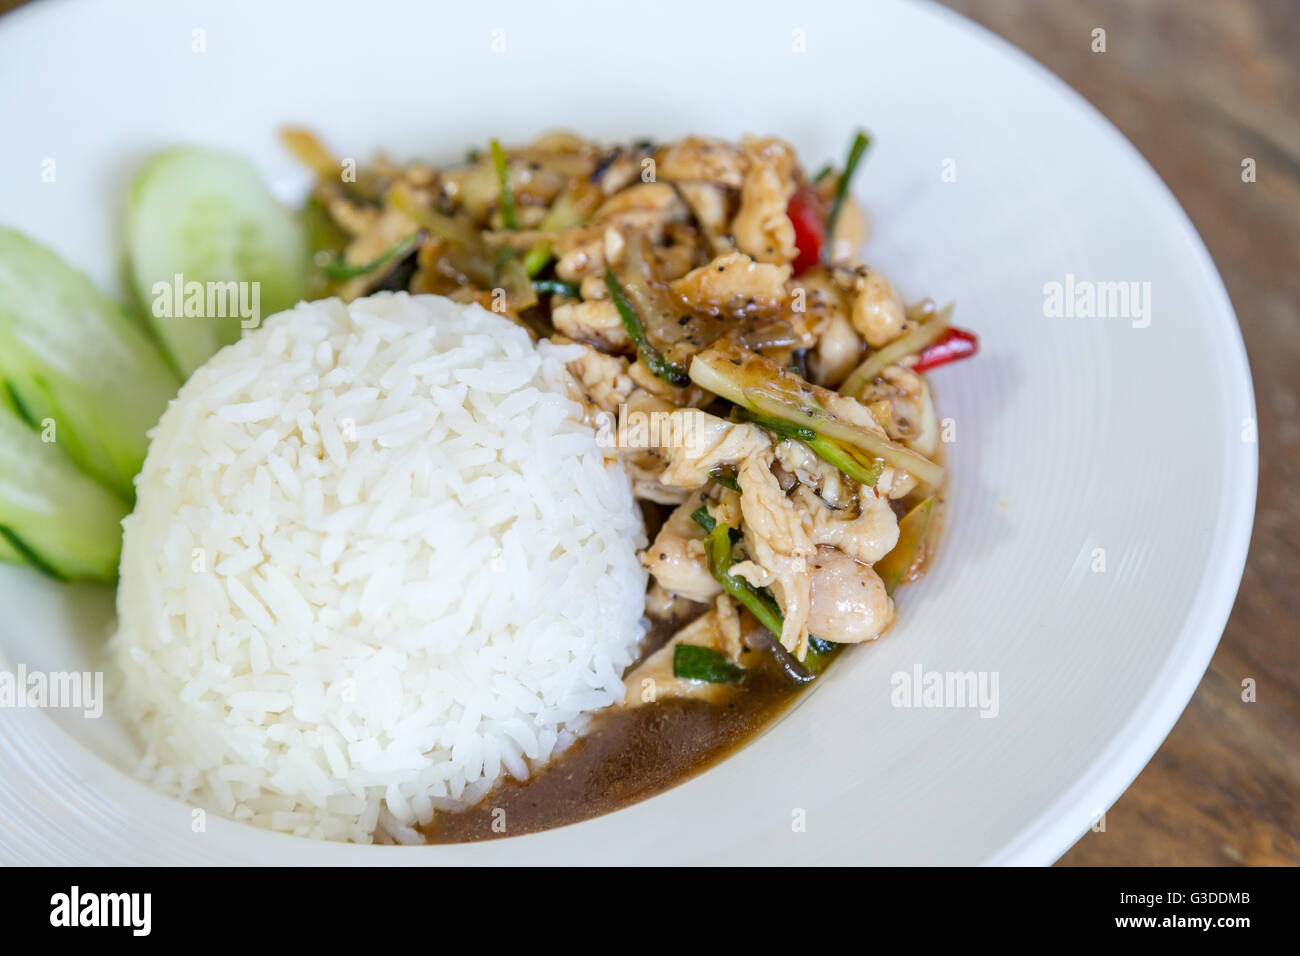 Thai food thai spicy food fried chicken with sweet basil stock thai food thai spicy food fried chicken with sweet basil stock photo 105402315 alamy forumfinder Image collections